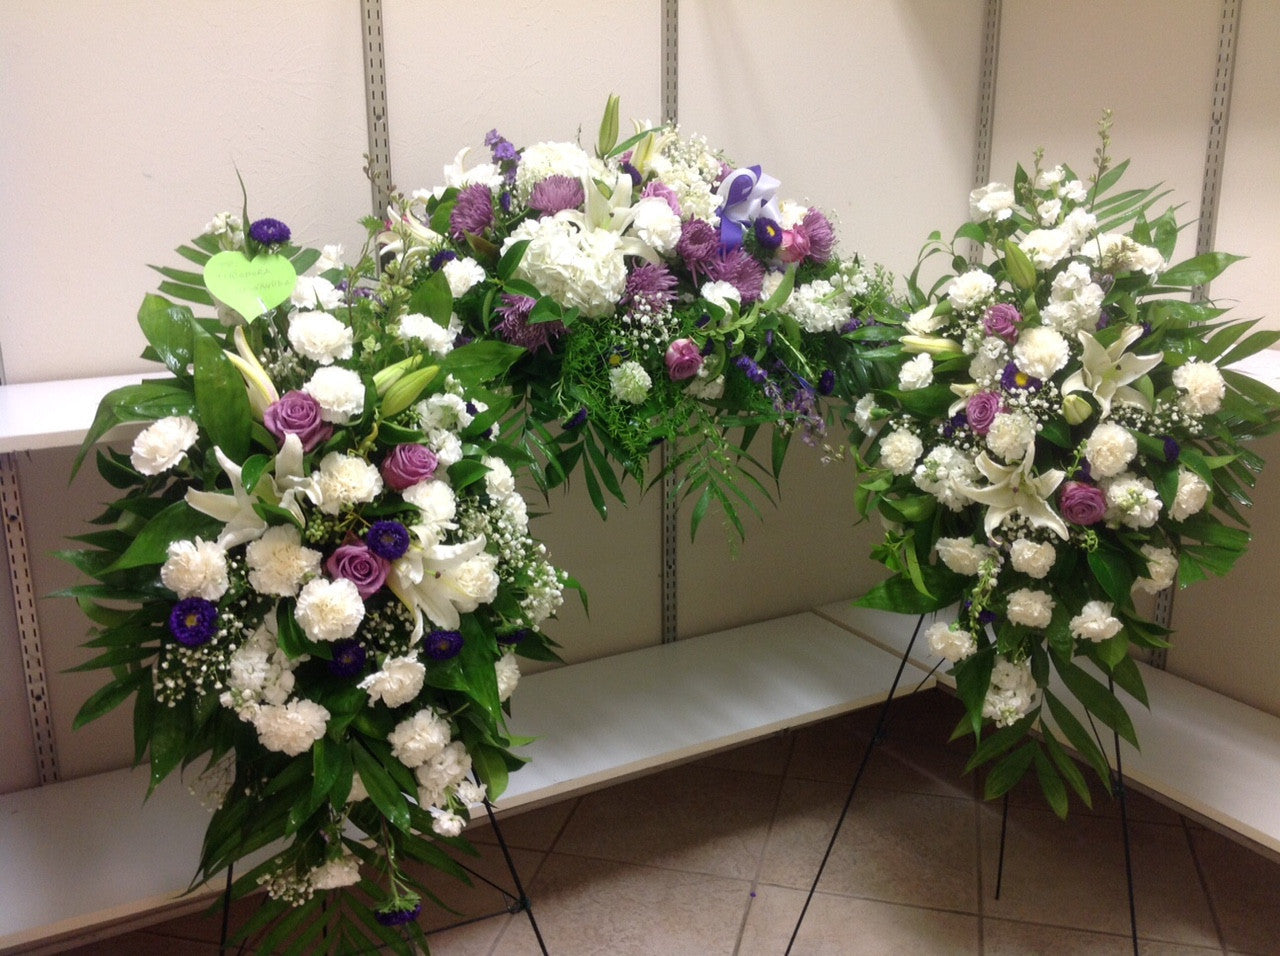 Flora funeral flowers are happy flora funeral offer sympathy spirit of love funeral flower package two easel one casket izmirmasajfo